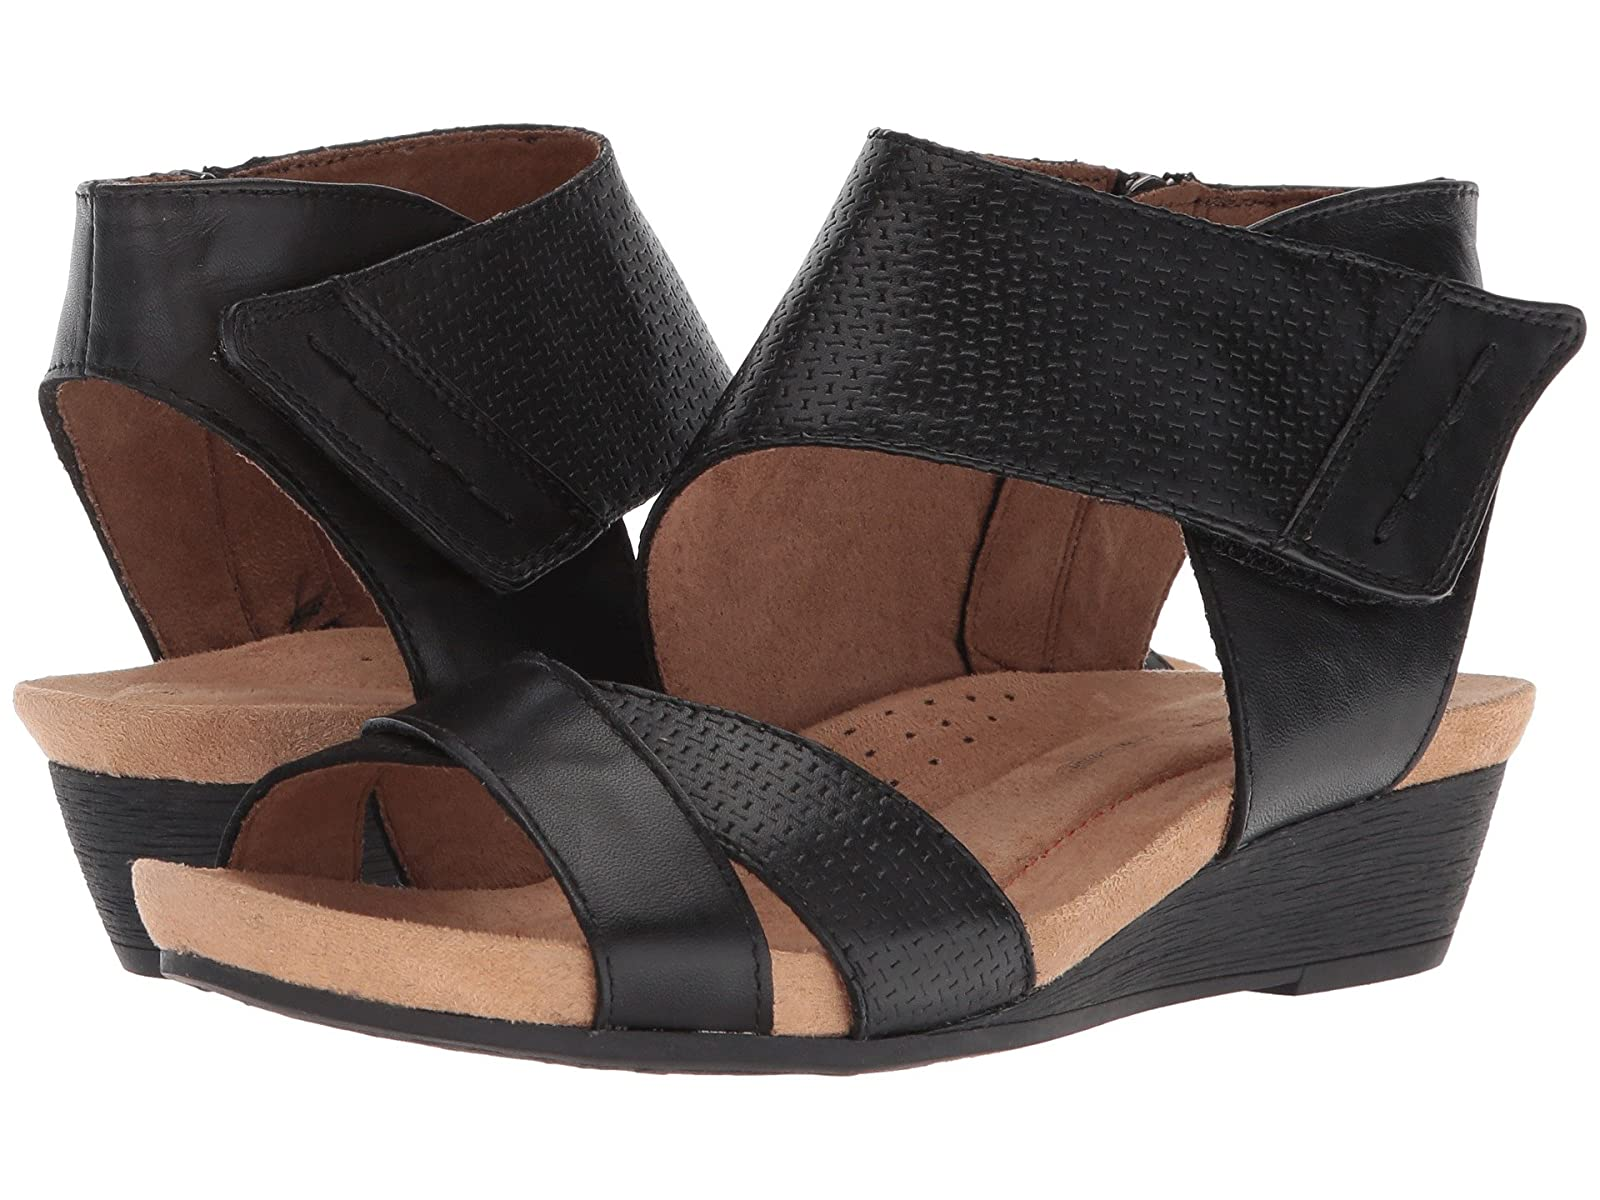 Rockport Sable Two-Piece CuffCheap and distinctive eye-catching shoes